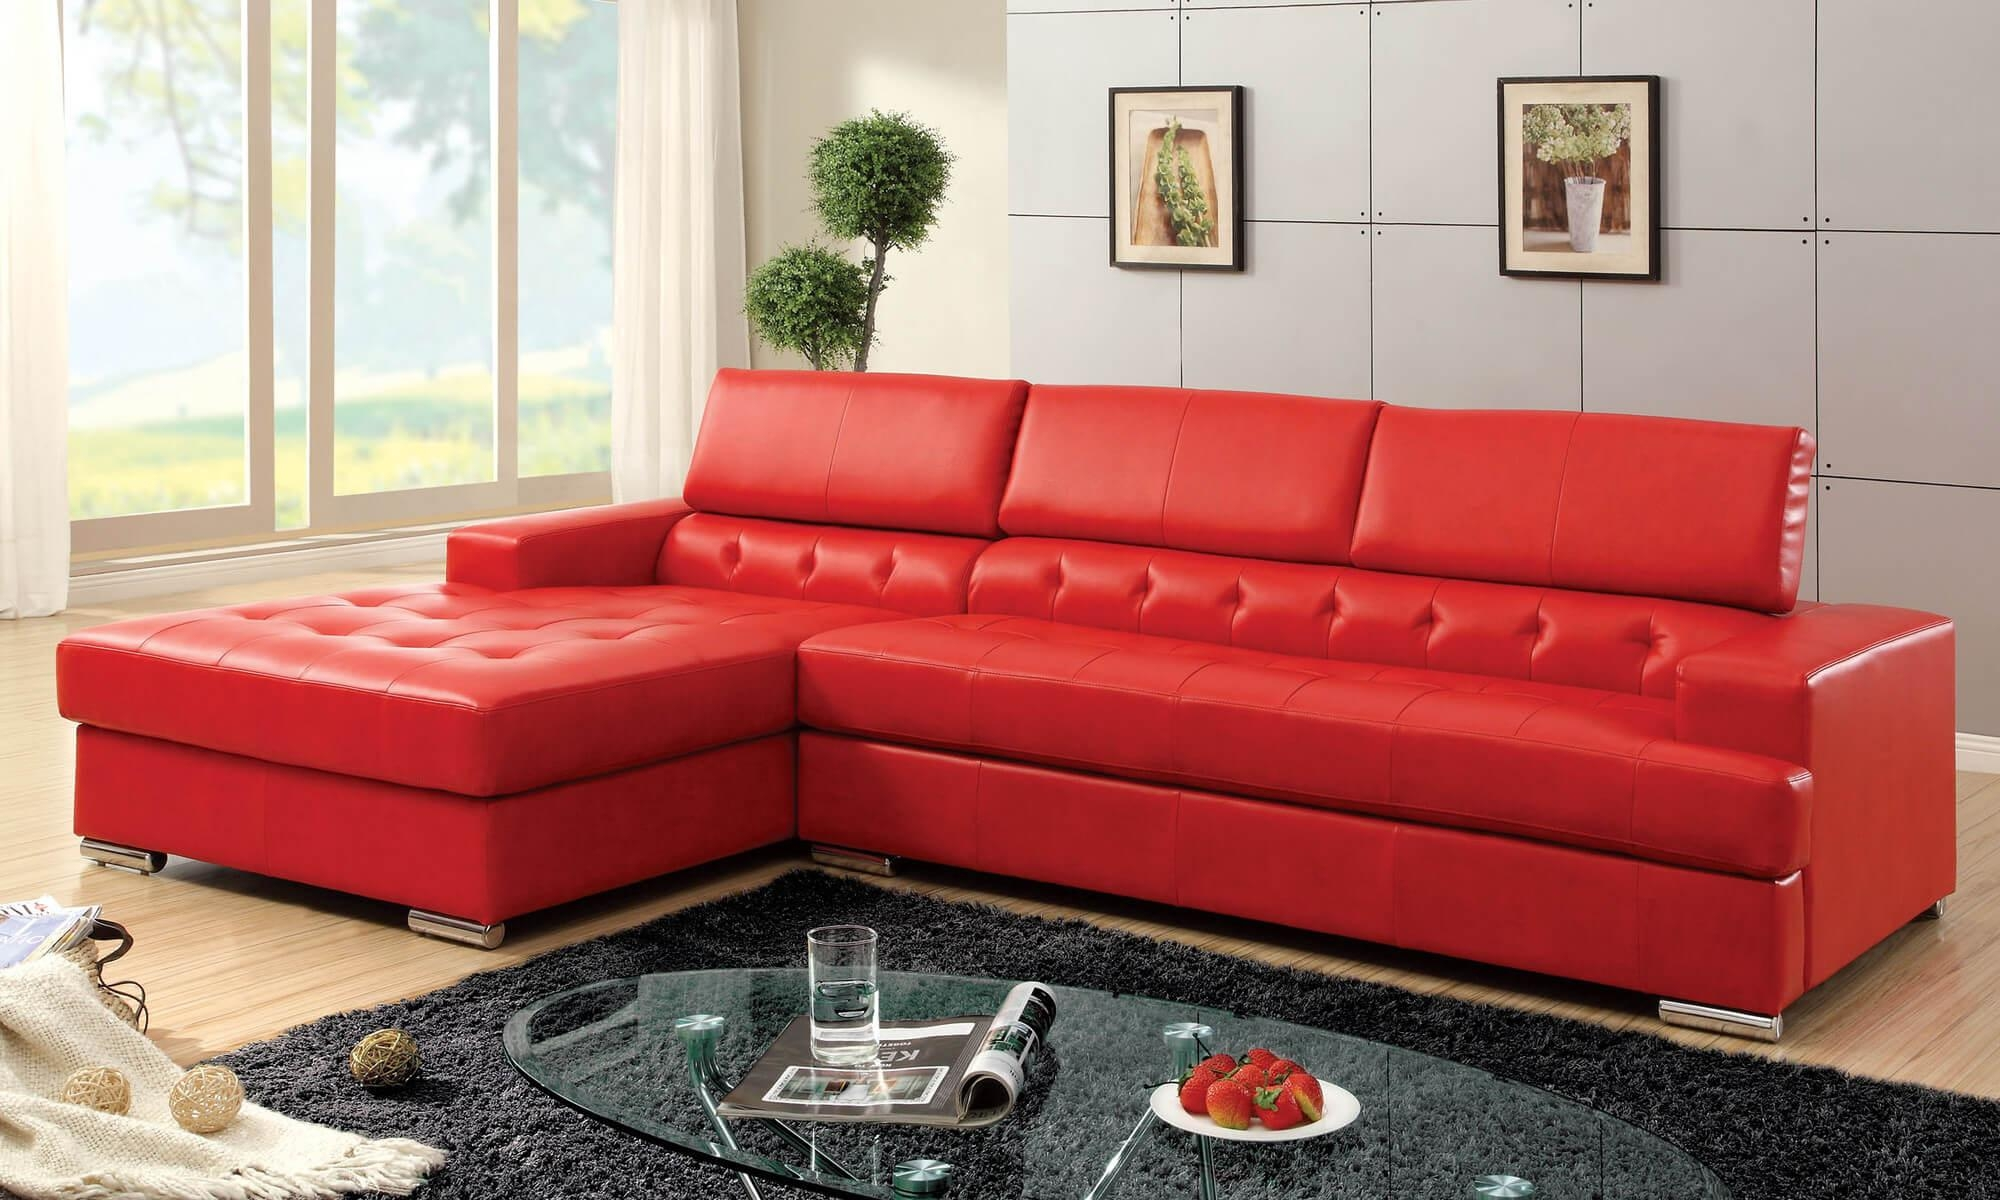 Sofas Center : Tosh Furniture Modern Black And Red Sofa Set Ikea Throughout Black And Red Sofas (Image 18 of 20)